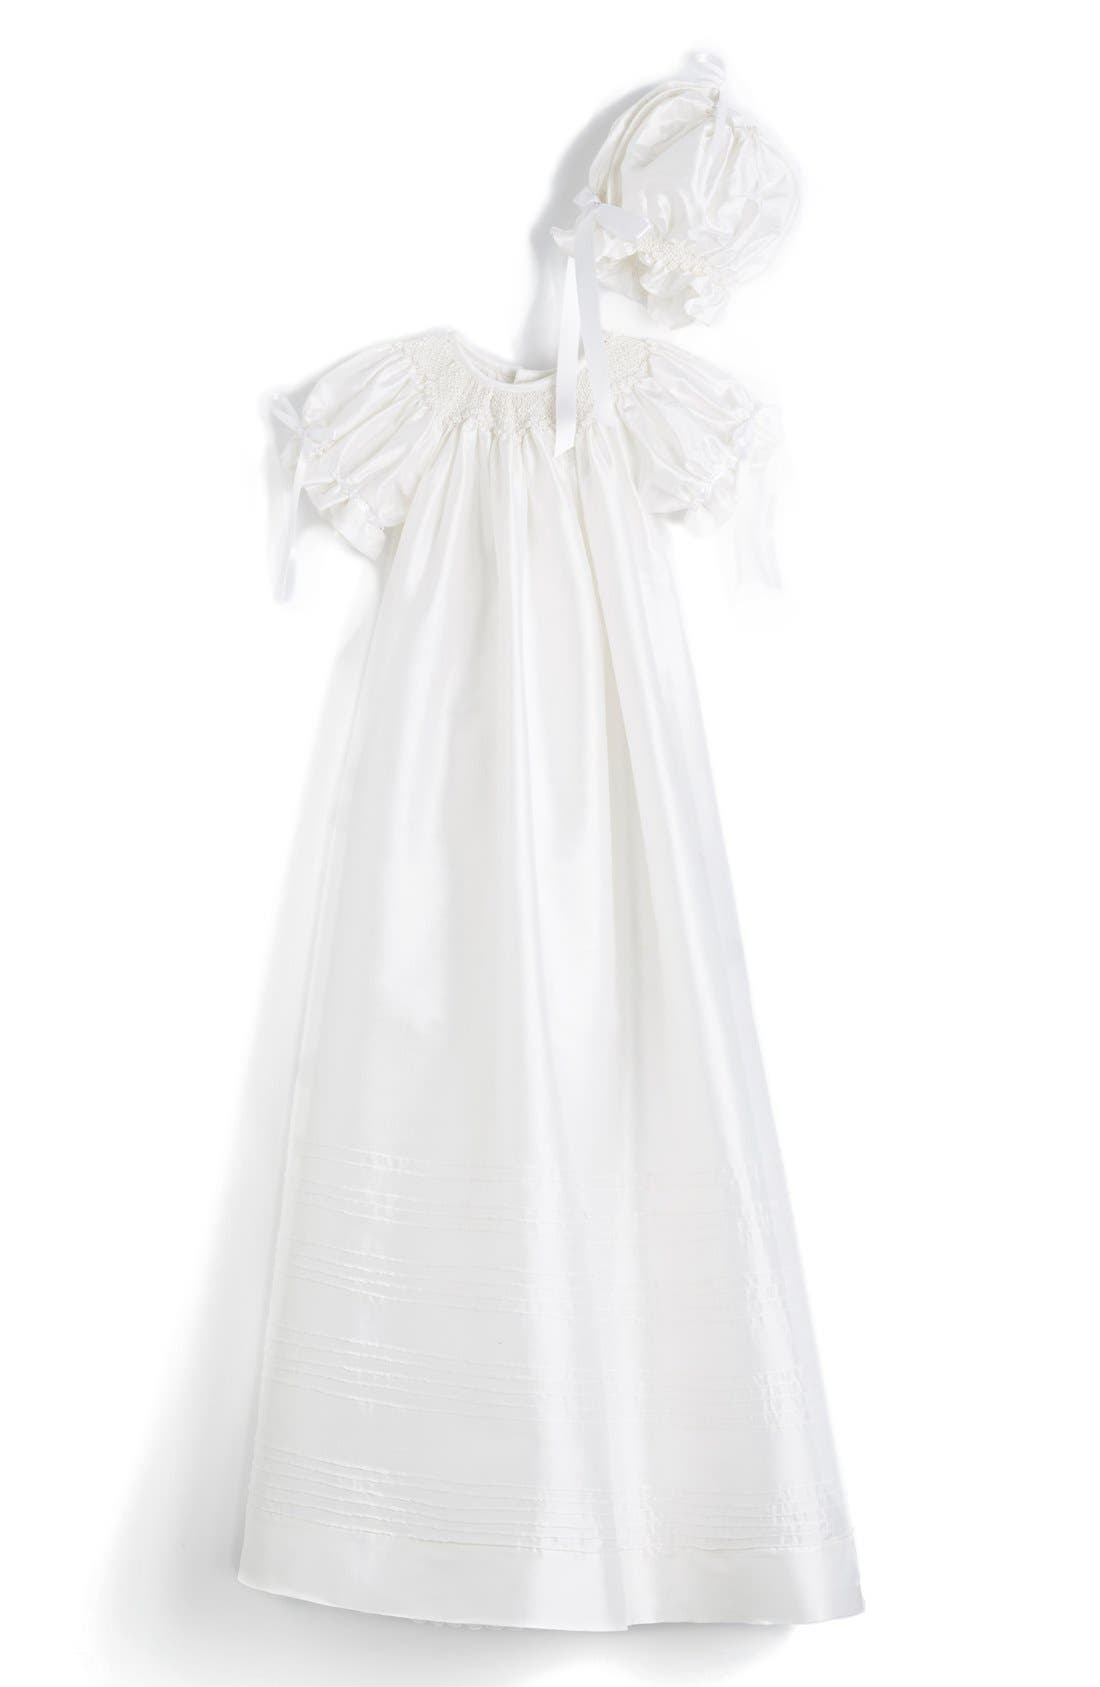 ISABEL GARRETON 'Garland' Silk Bishop Christening Gown &